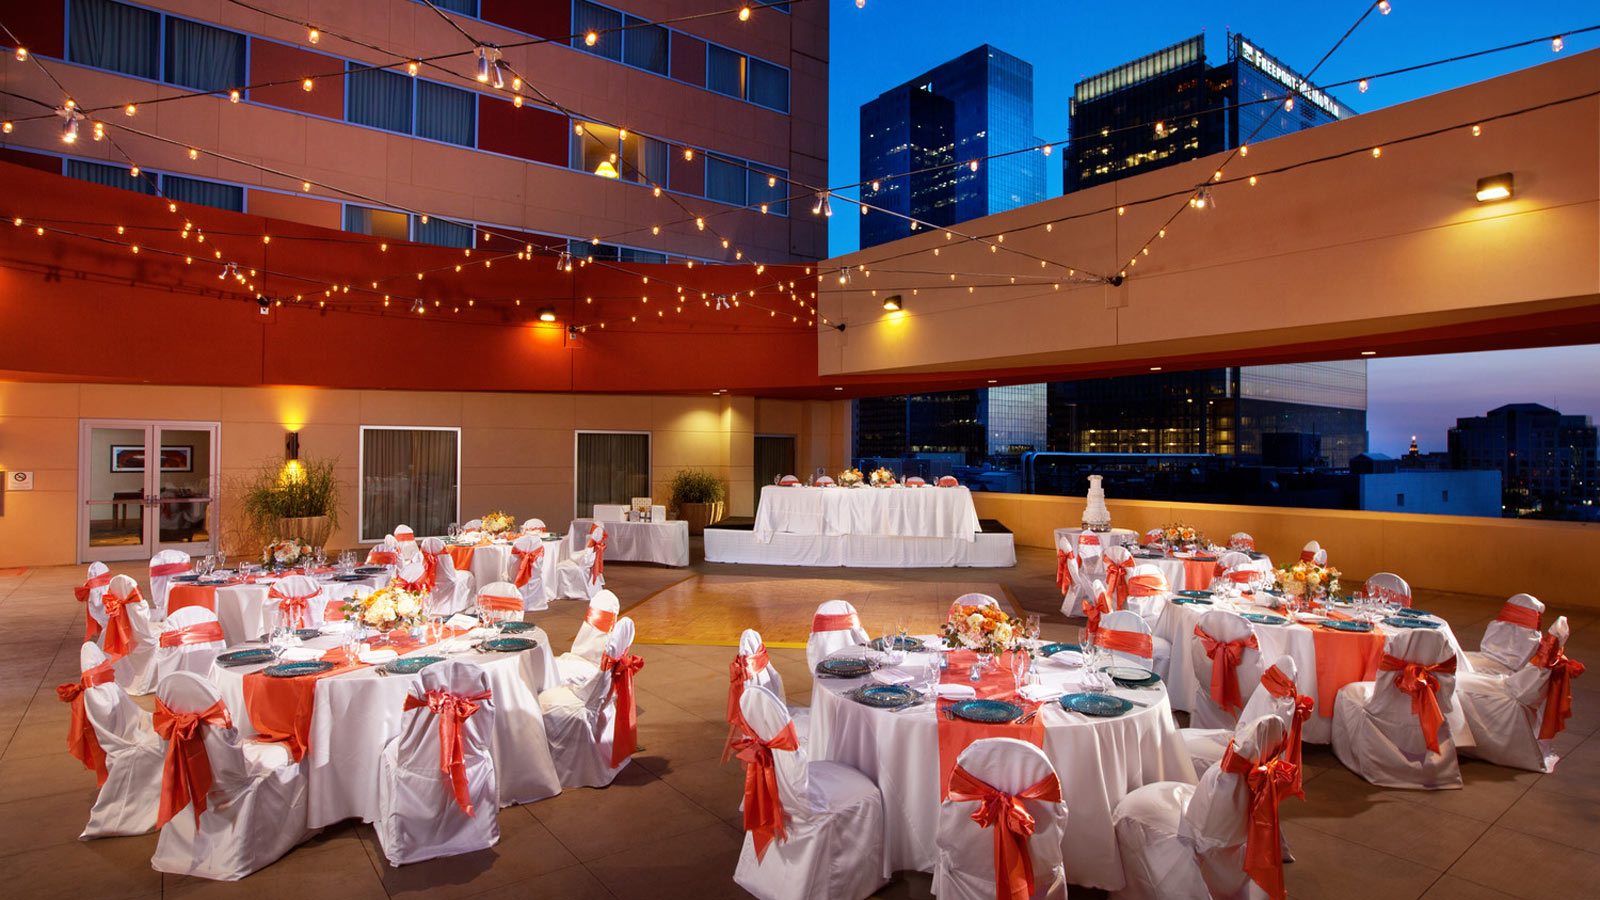 Wedding venues in phoenix az sheraton grand phoenix phoenix wedding venues outdoor venue junglespirit Gallery